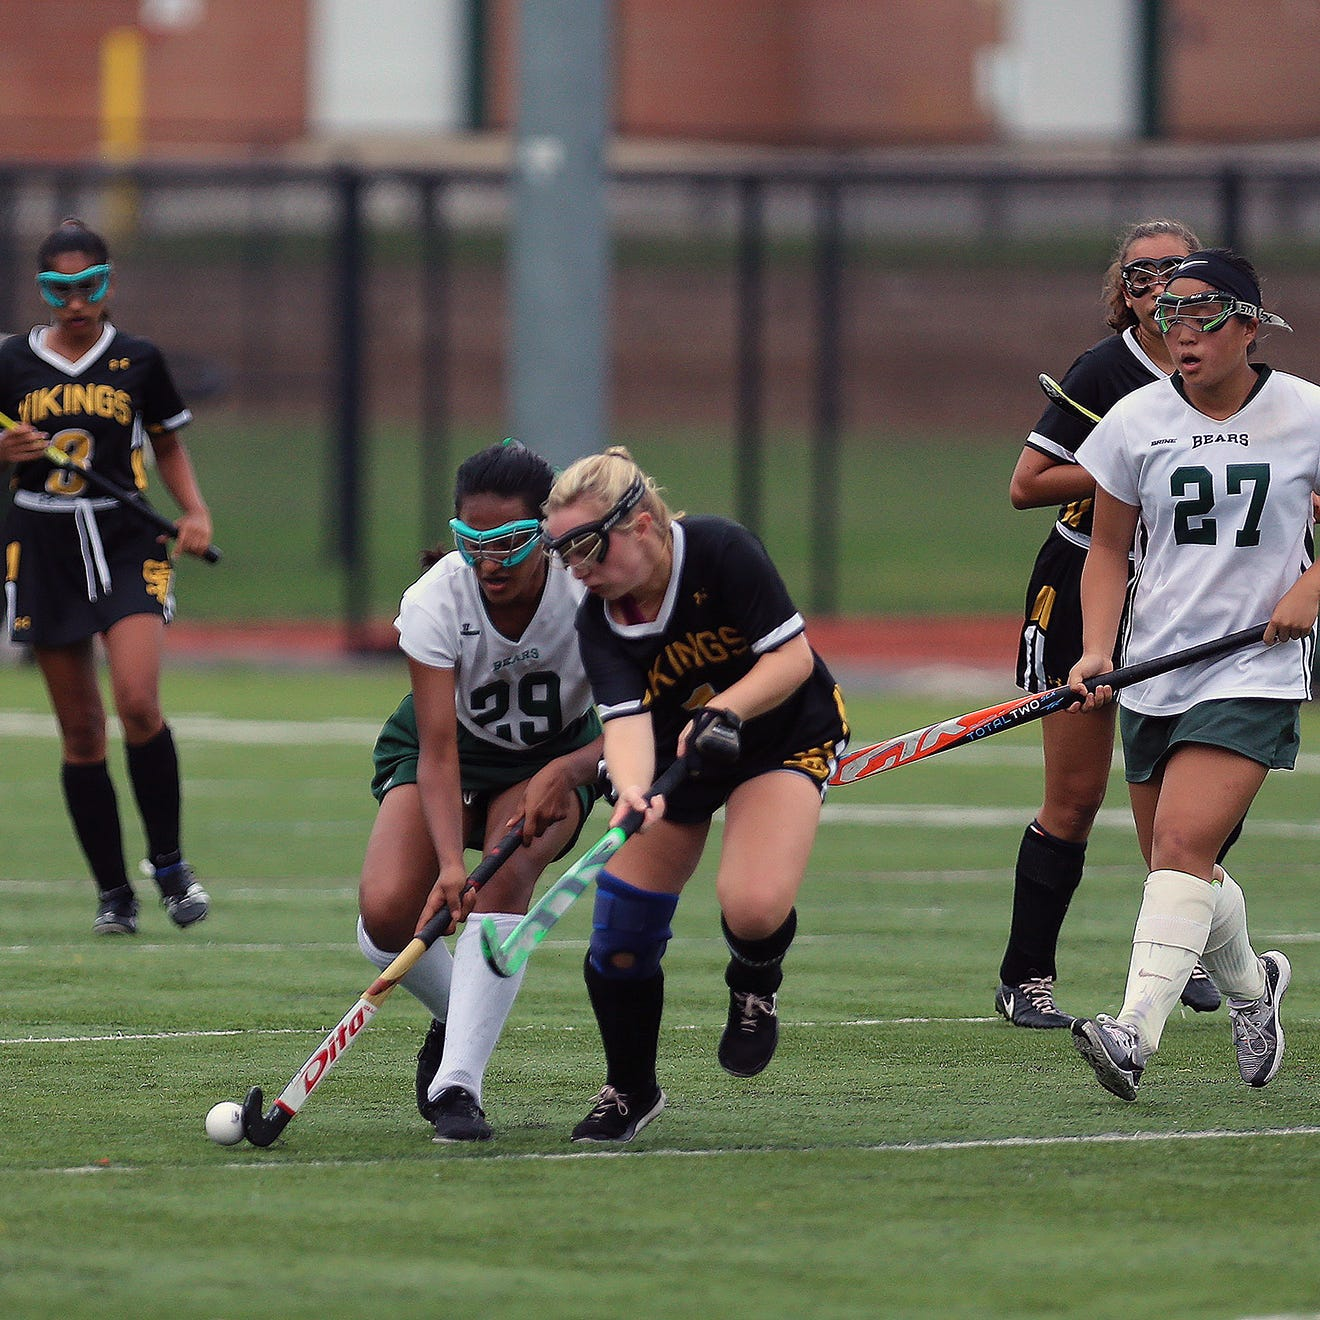 South Brunswick at East Brunswick field hockey